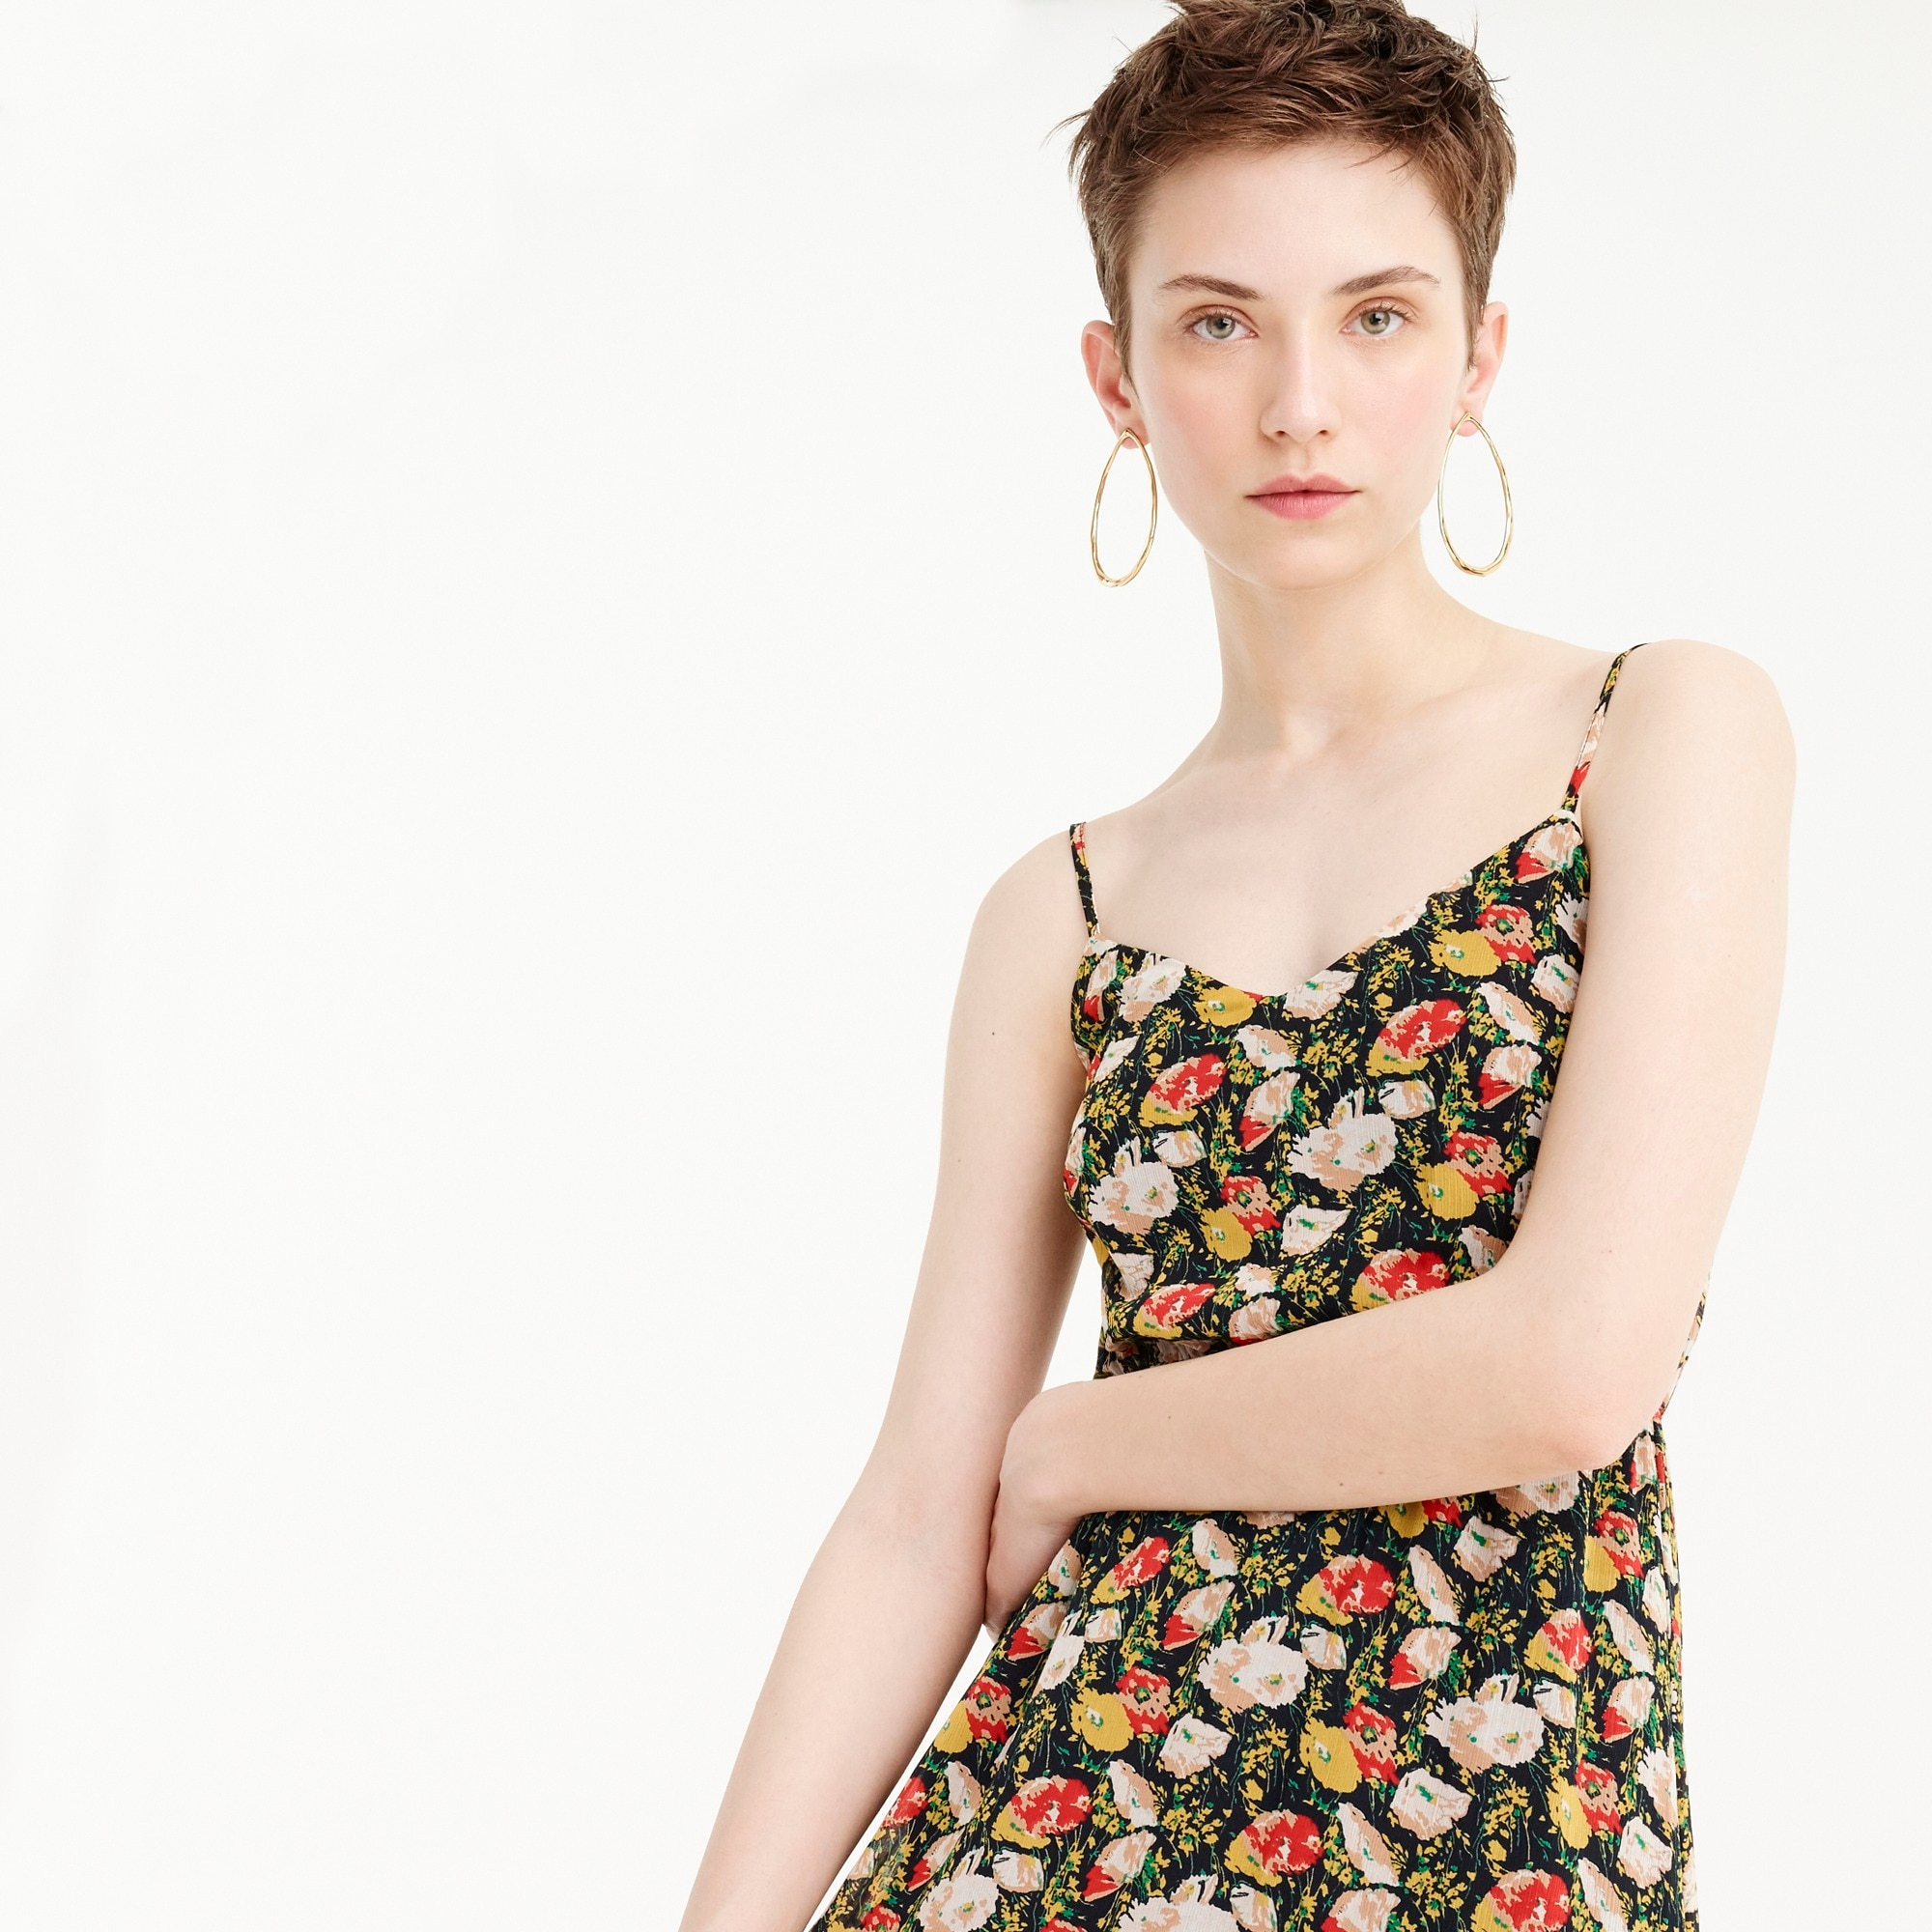 Image 3 for J.Crew Mercantile tiered maxi dress in sweet pea floral